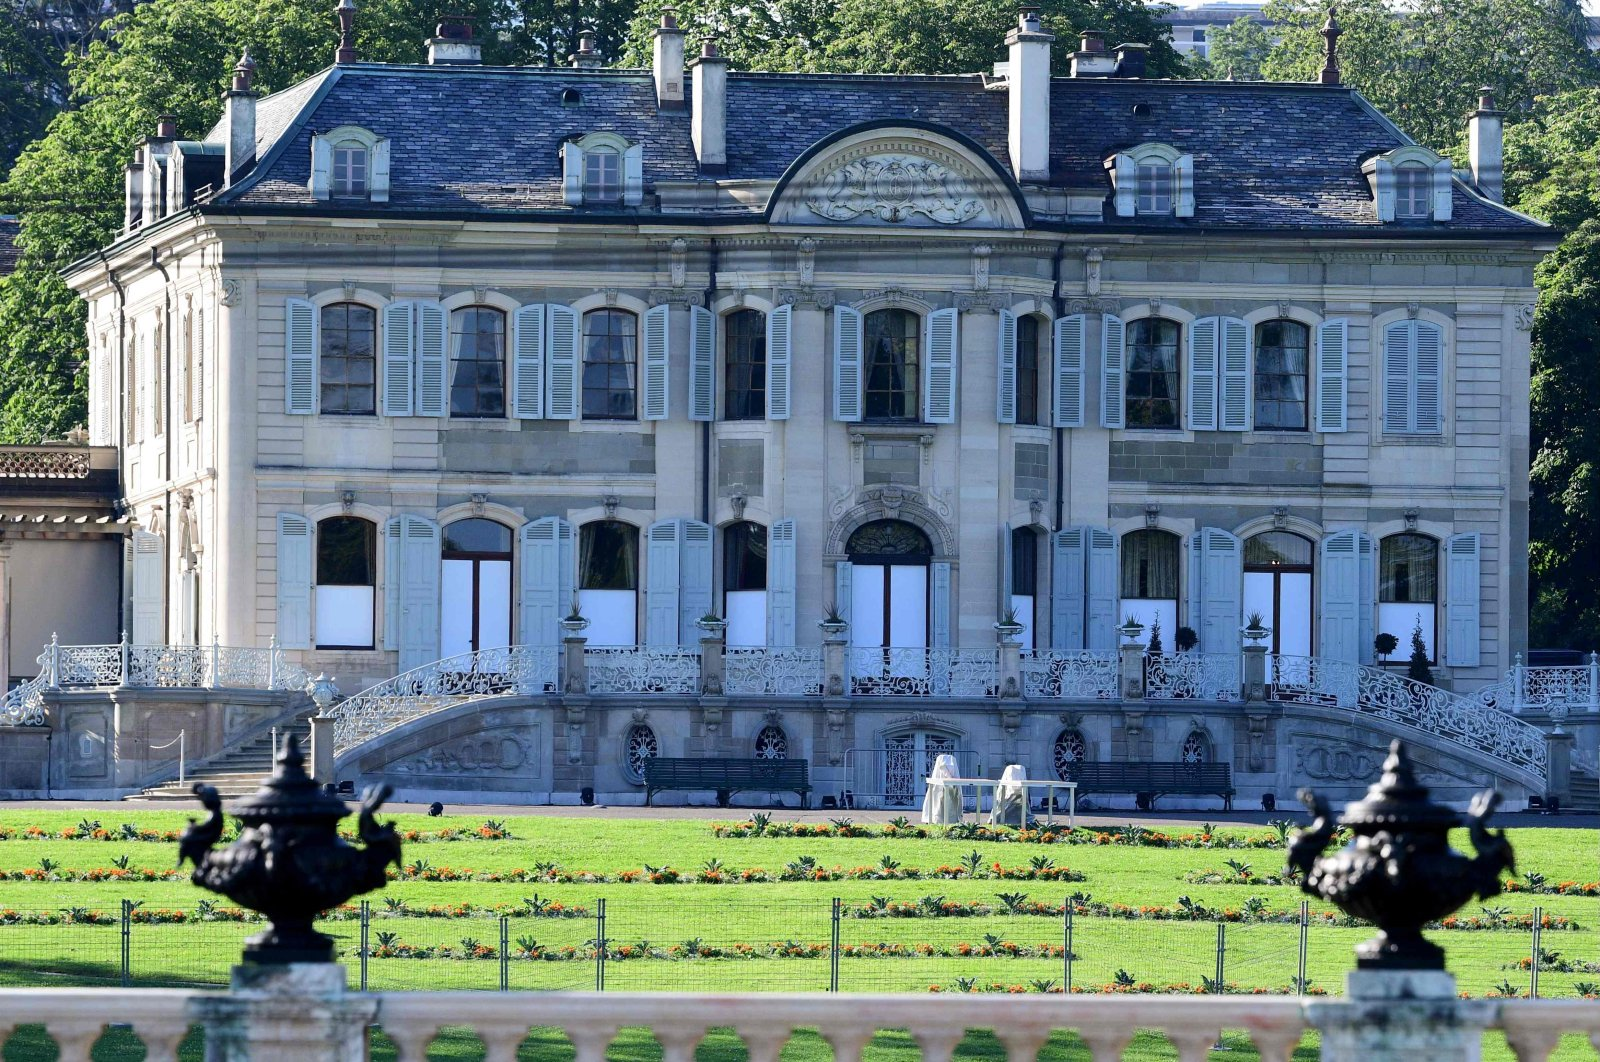 """The """"Villa La Grange"""" is seen on June 16, 2021, in Geneva ahead of the summit between U.S. President Joe Biden and Russian President Vladimir Putin, which will take place in the plush 18th-century lakeside villa steeped in the Swiss city's history. (AFP Photo)"""